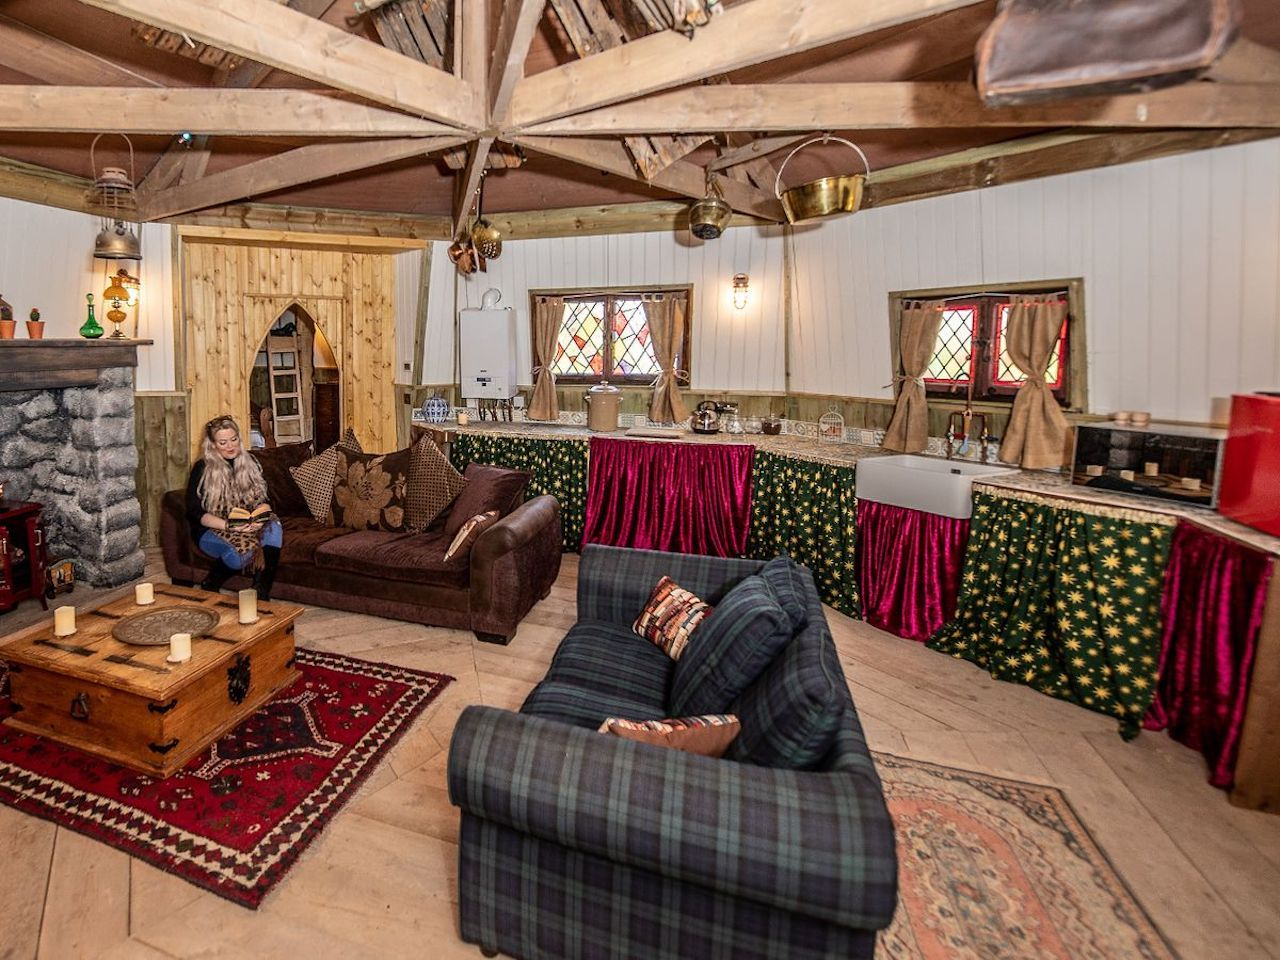 Yer a guest, 'arry.. The post You can spend the night in Hagrid's cottage from Harry Potter appeared first on Matador Network..